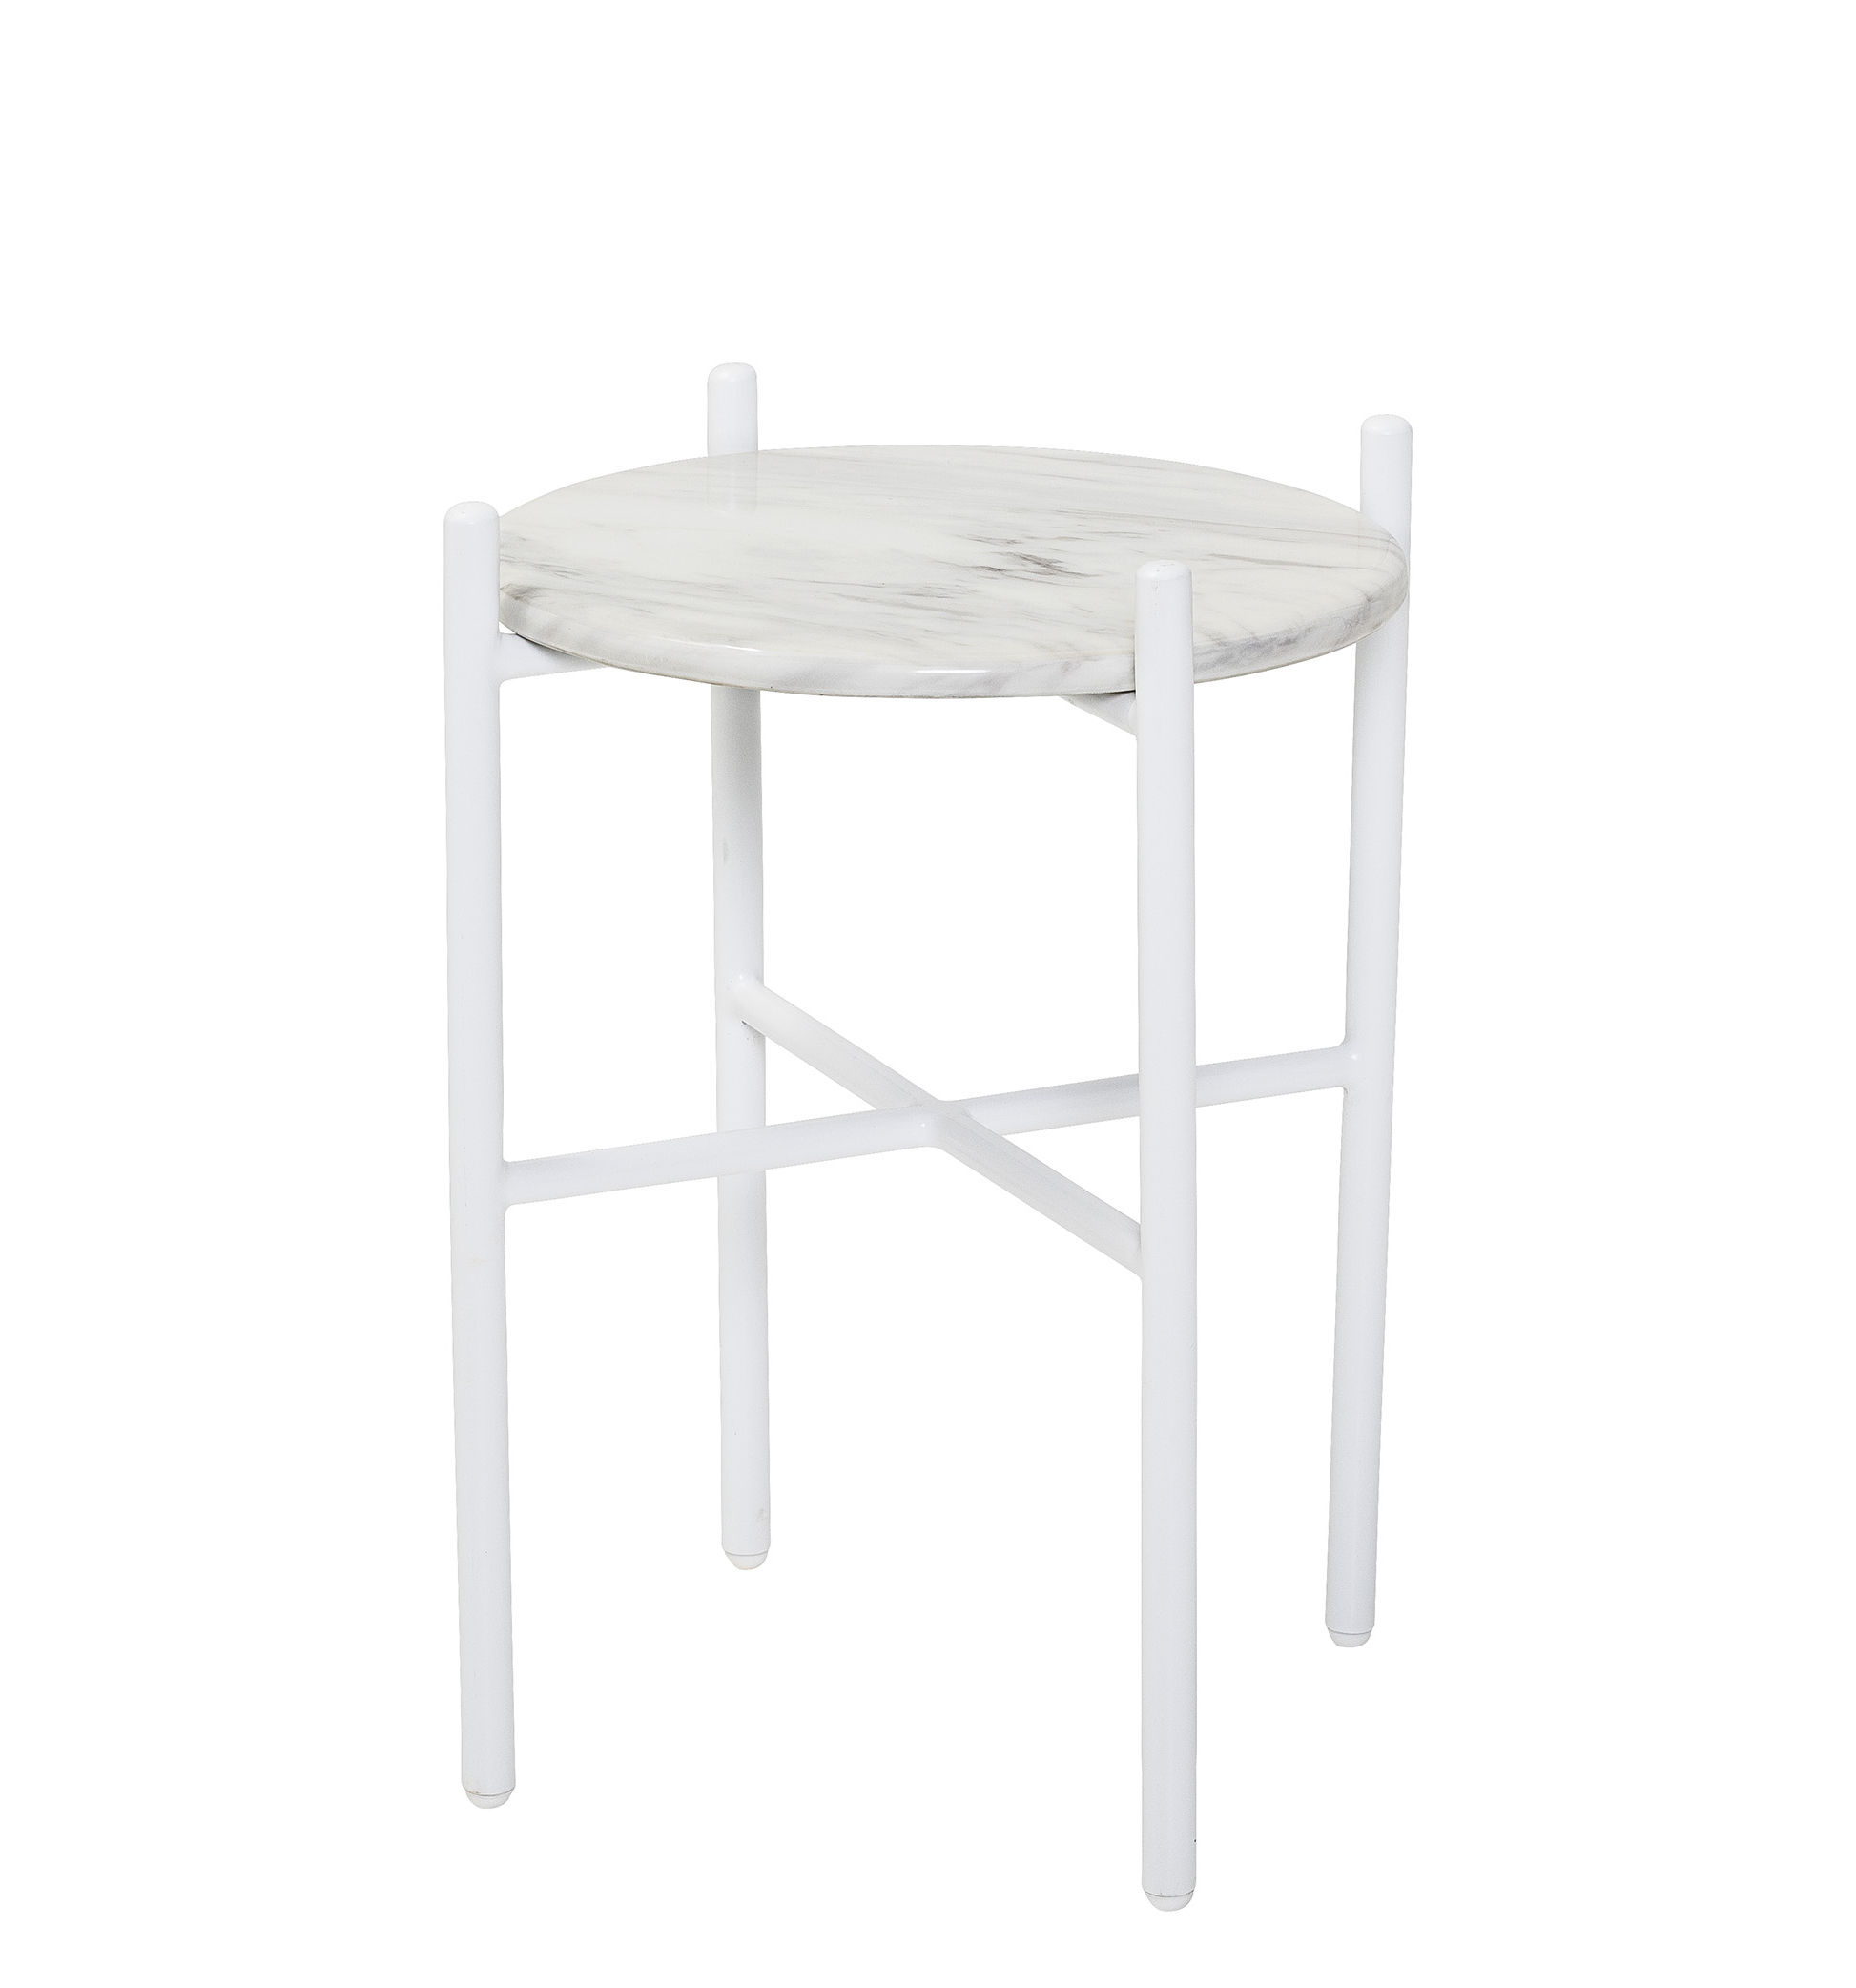 Furniture - Coffee Tables - End table - / Ø 39 x H 50 cm - Marble by Bloomingville - White - Lacquered iron, Marble